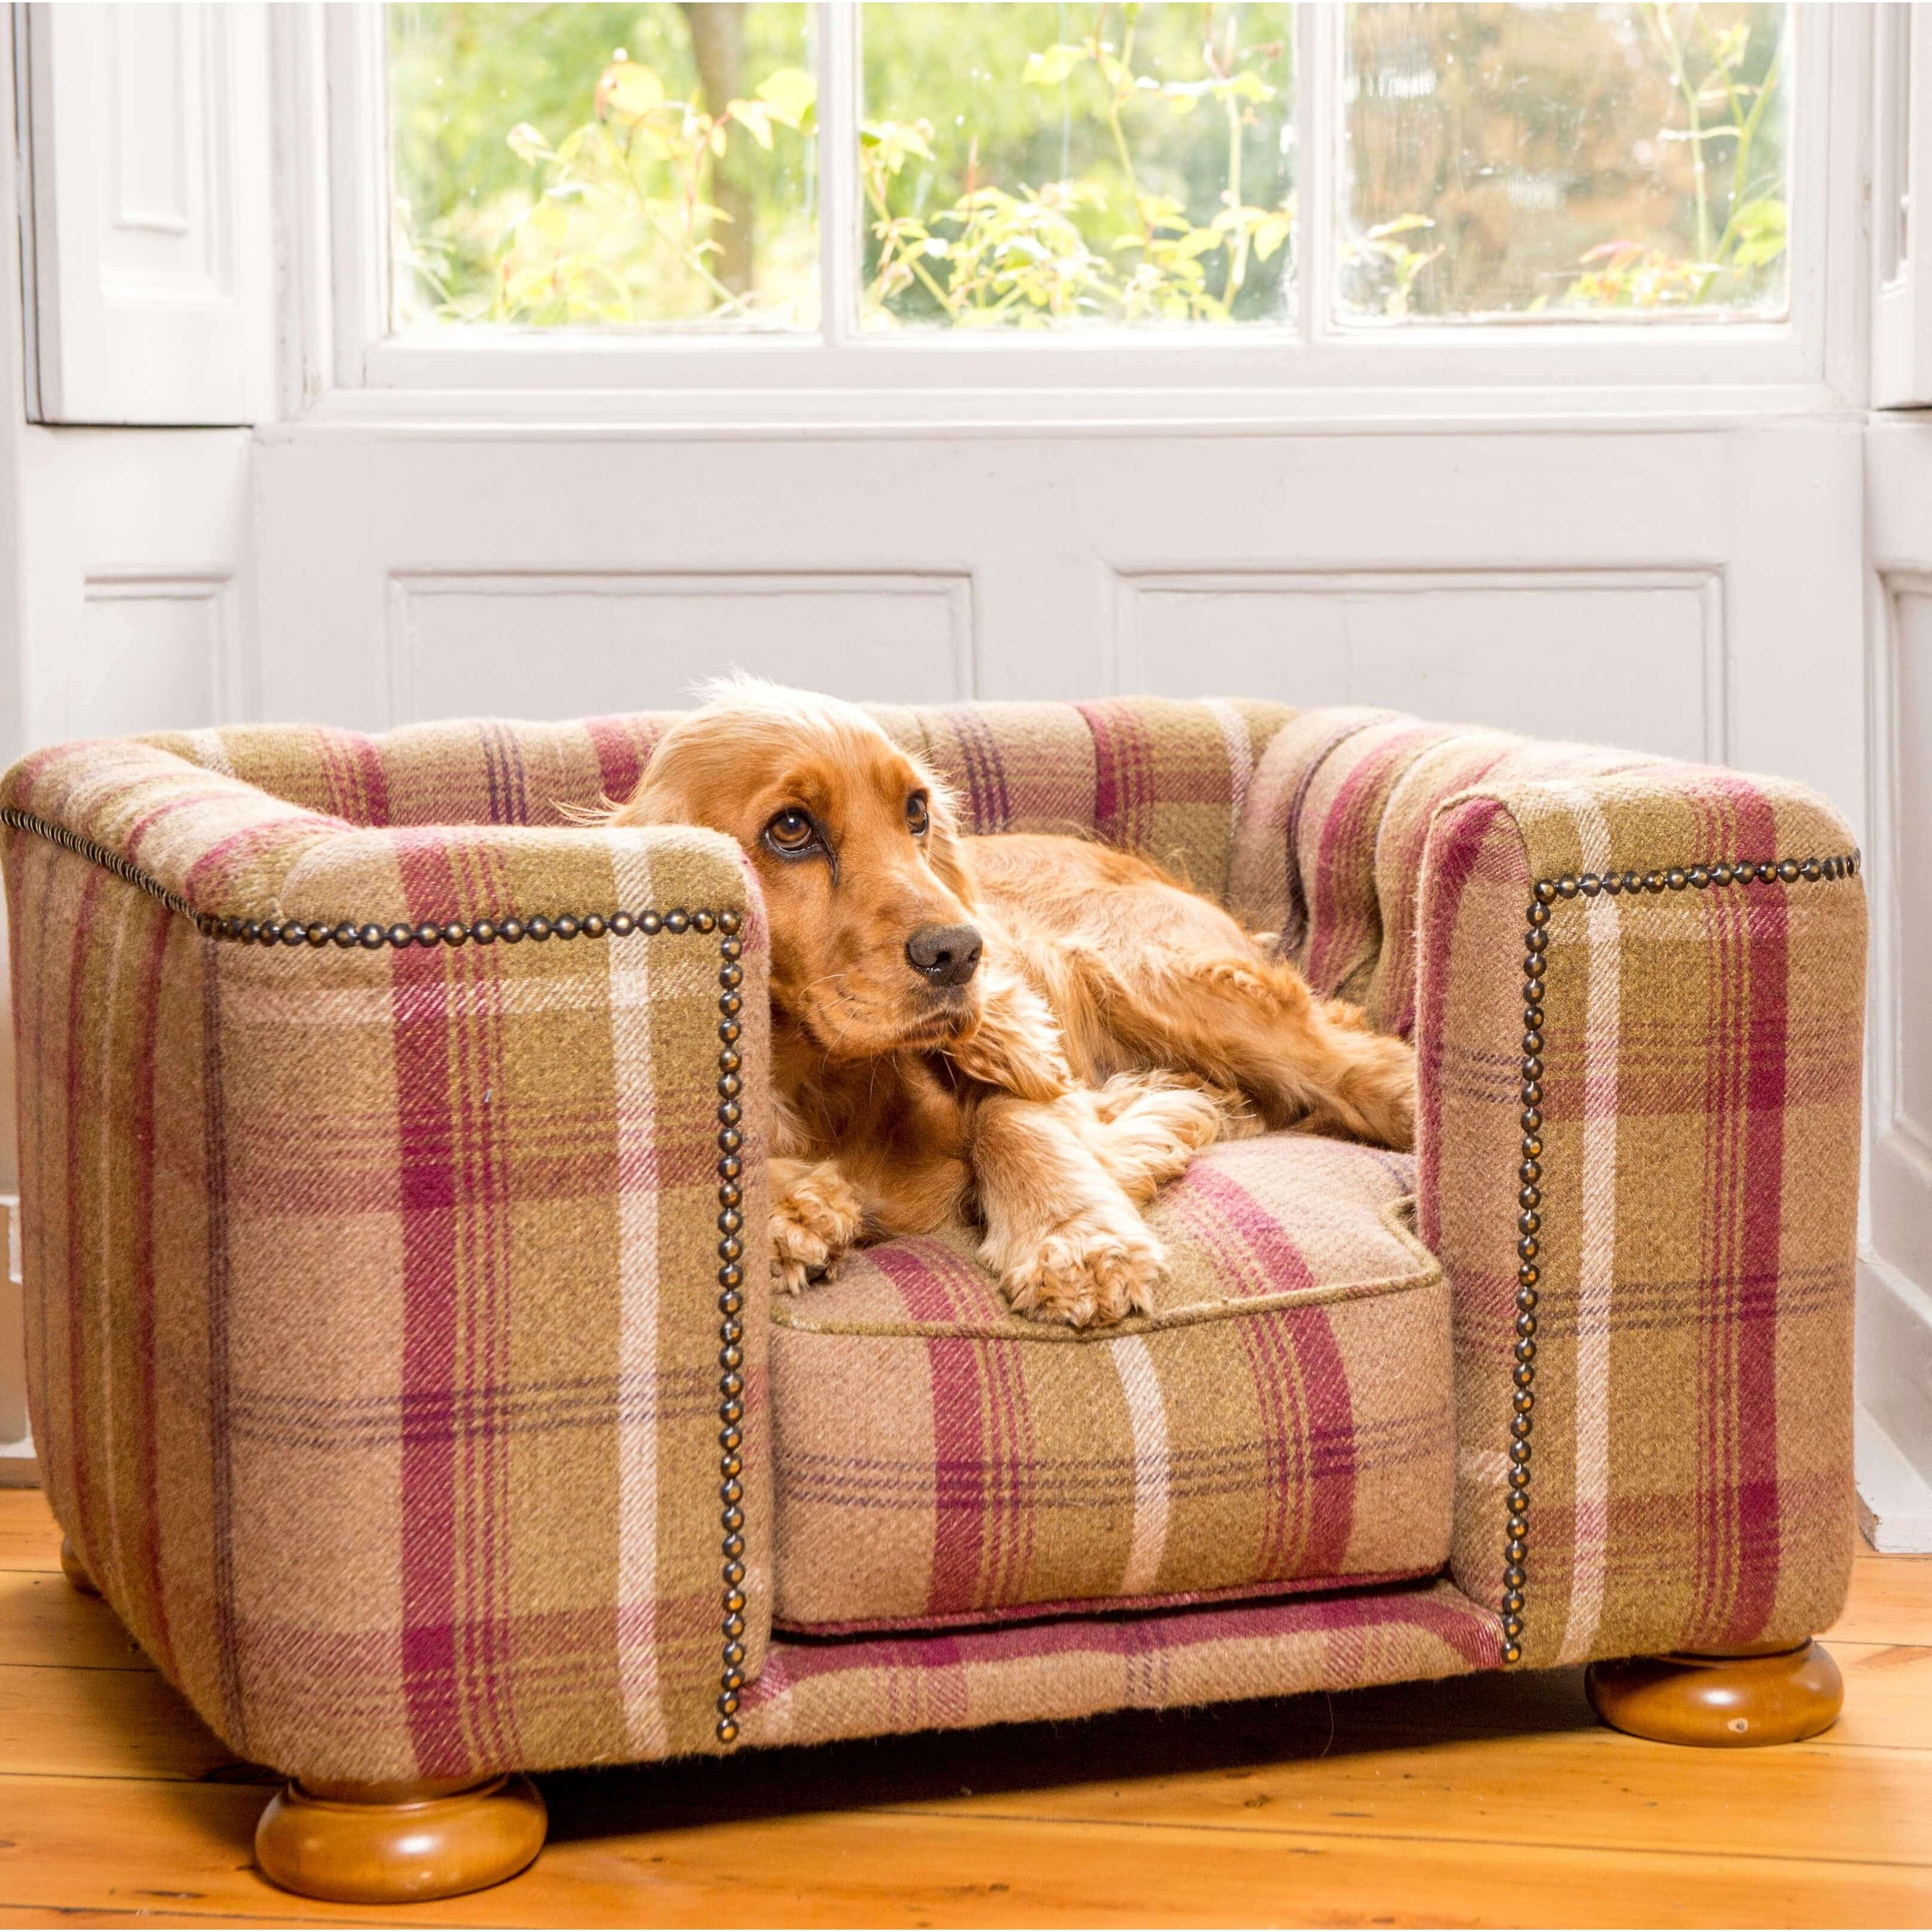 Tetford Square Chesterfield Dog Bed In Balmoral Tweed Dog Bed